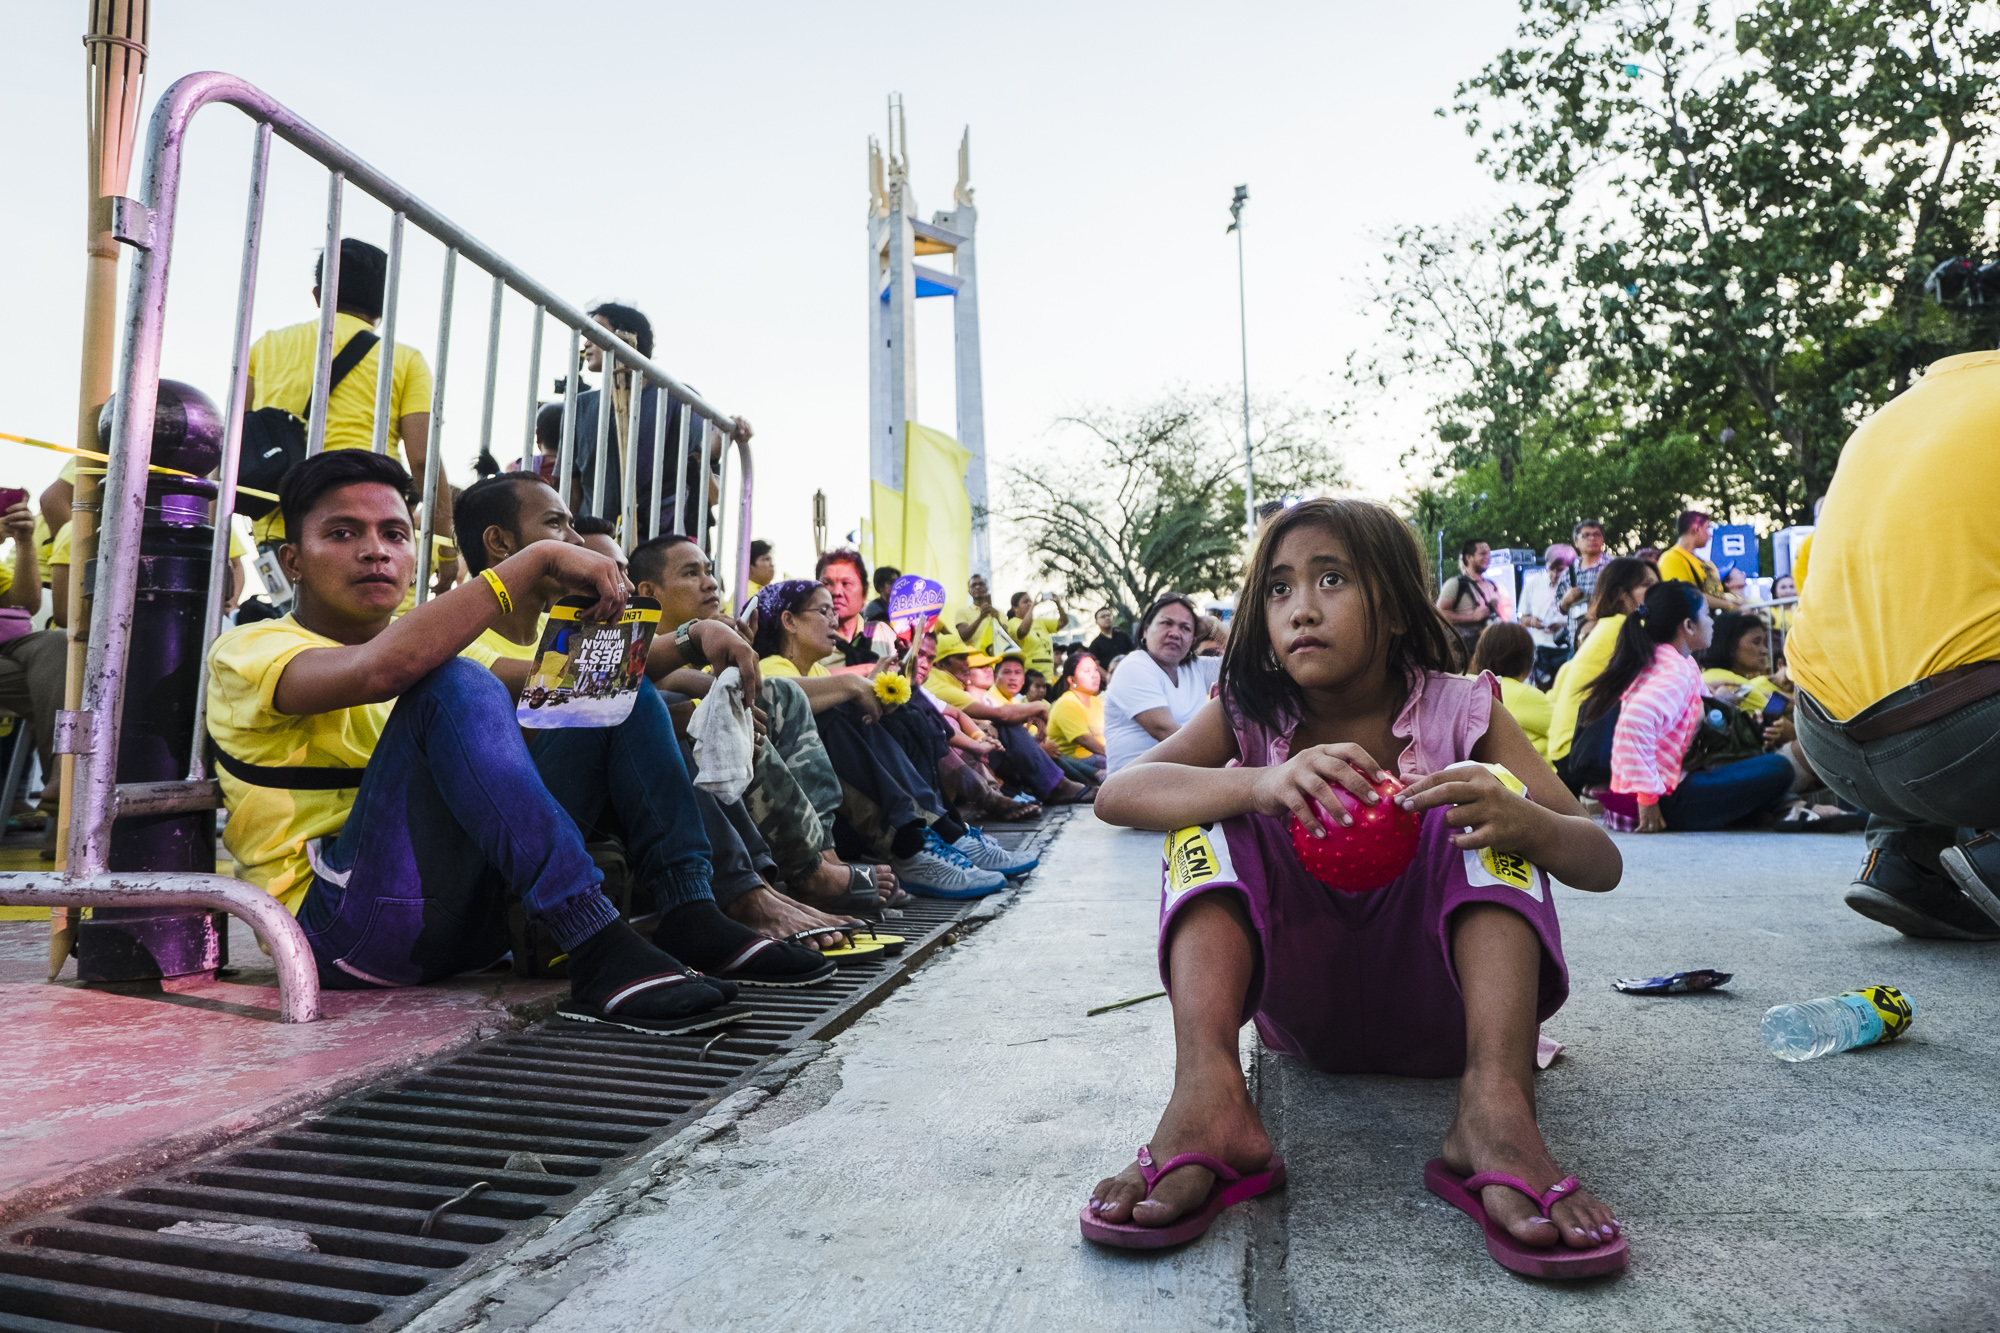 THE FUTURE. A street child sits with Robredo's supporters during her send-off at QC Circle.